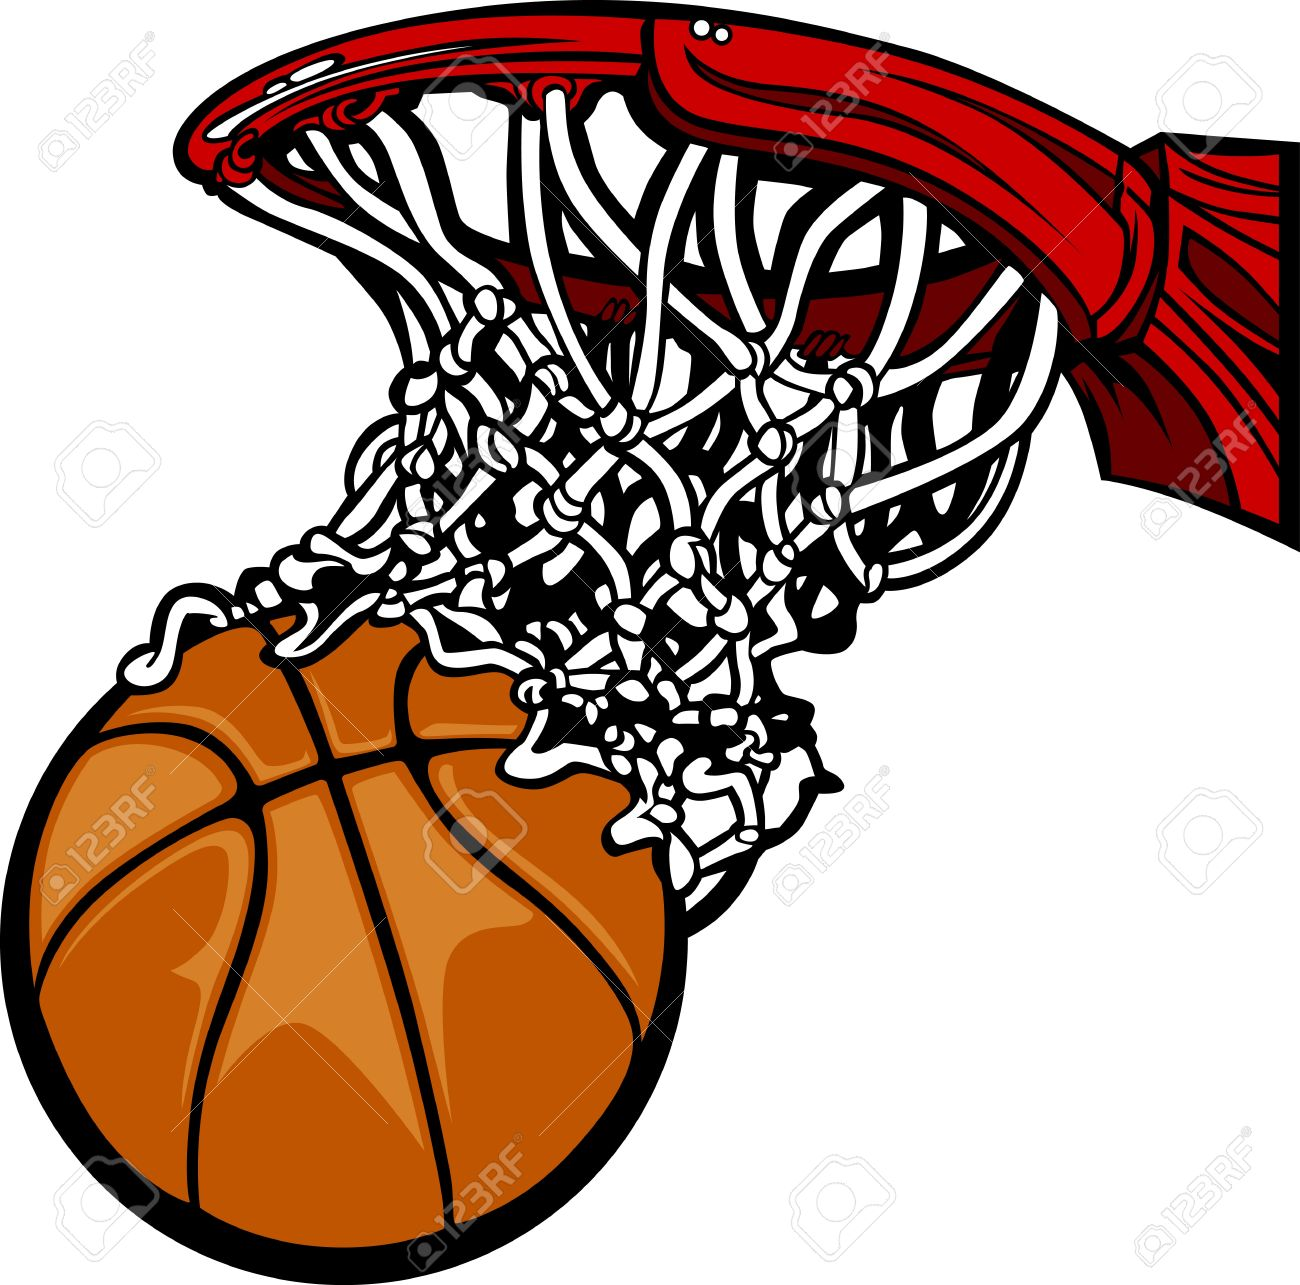 Piper Basketball Tournaments are Posted!